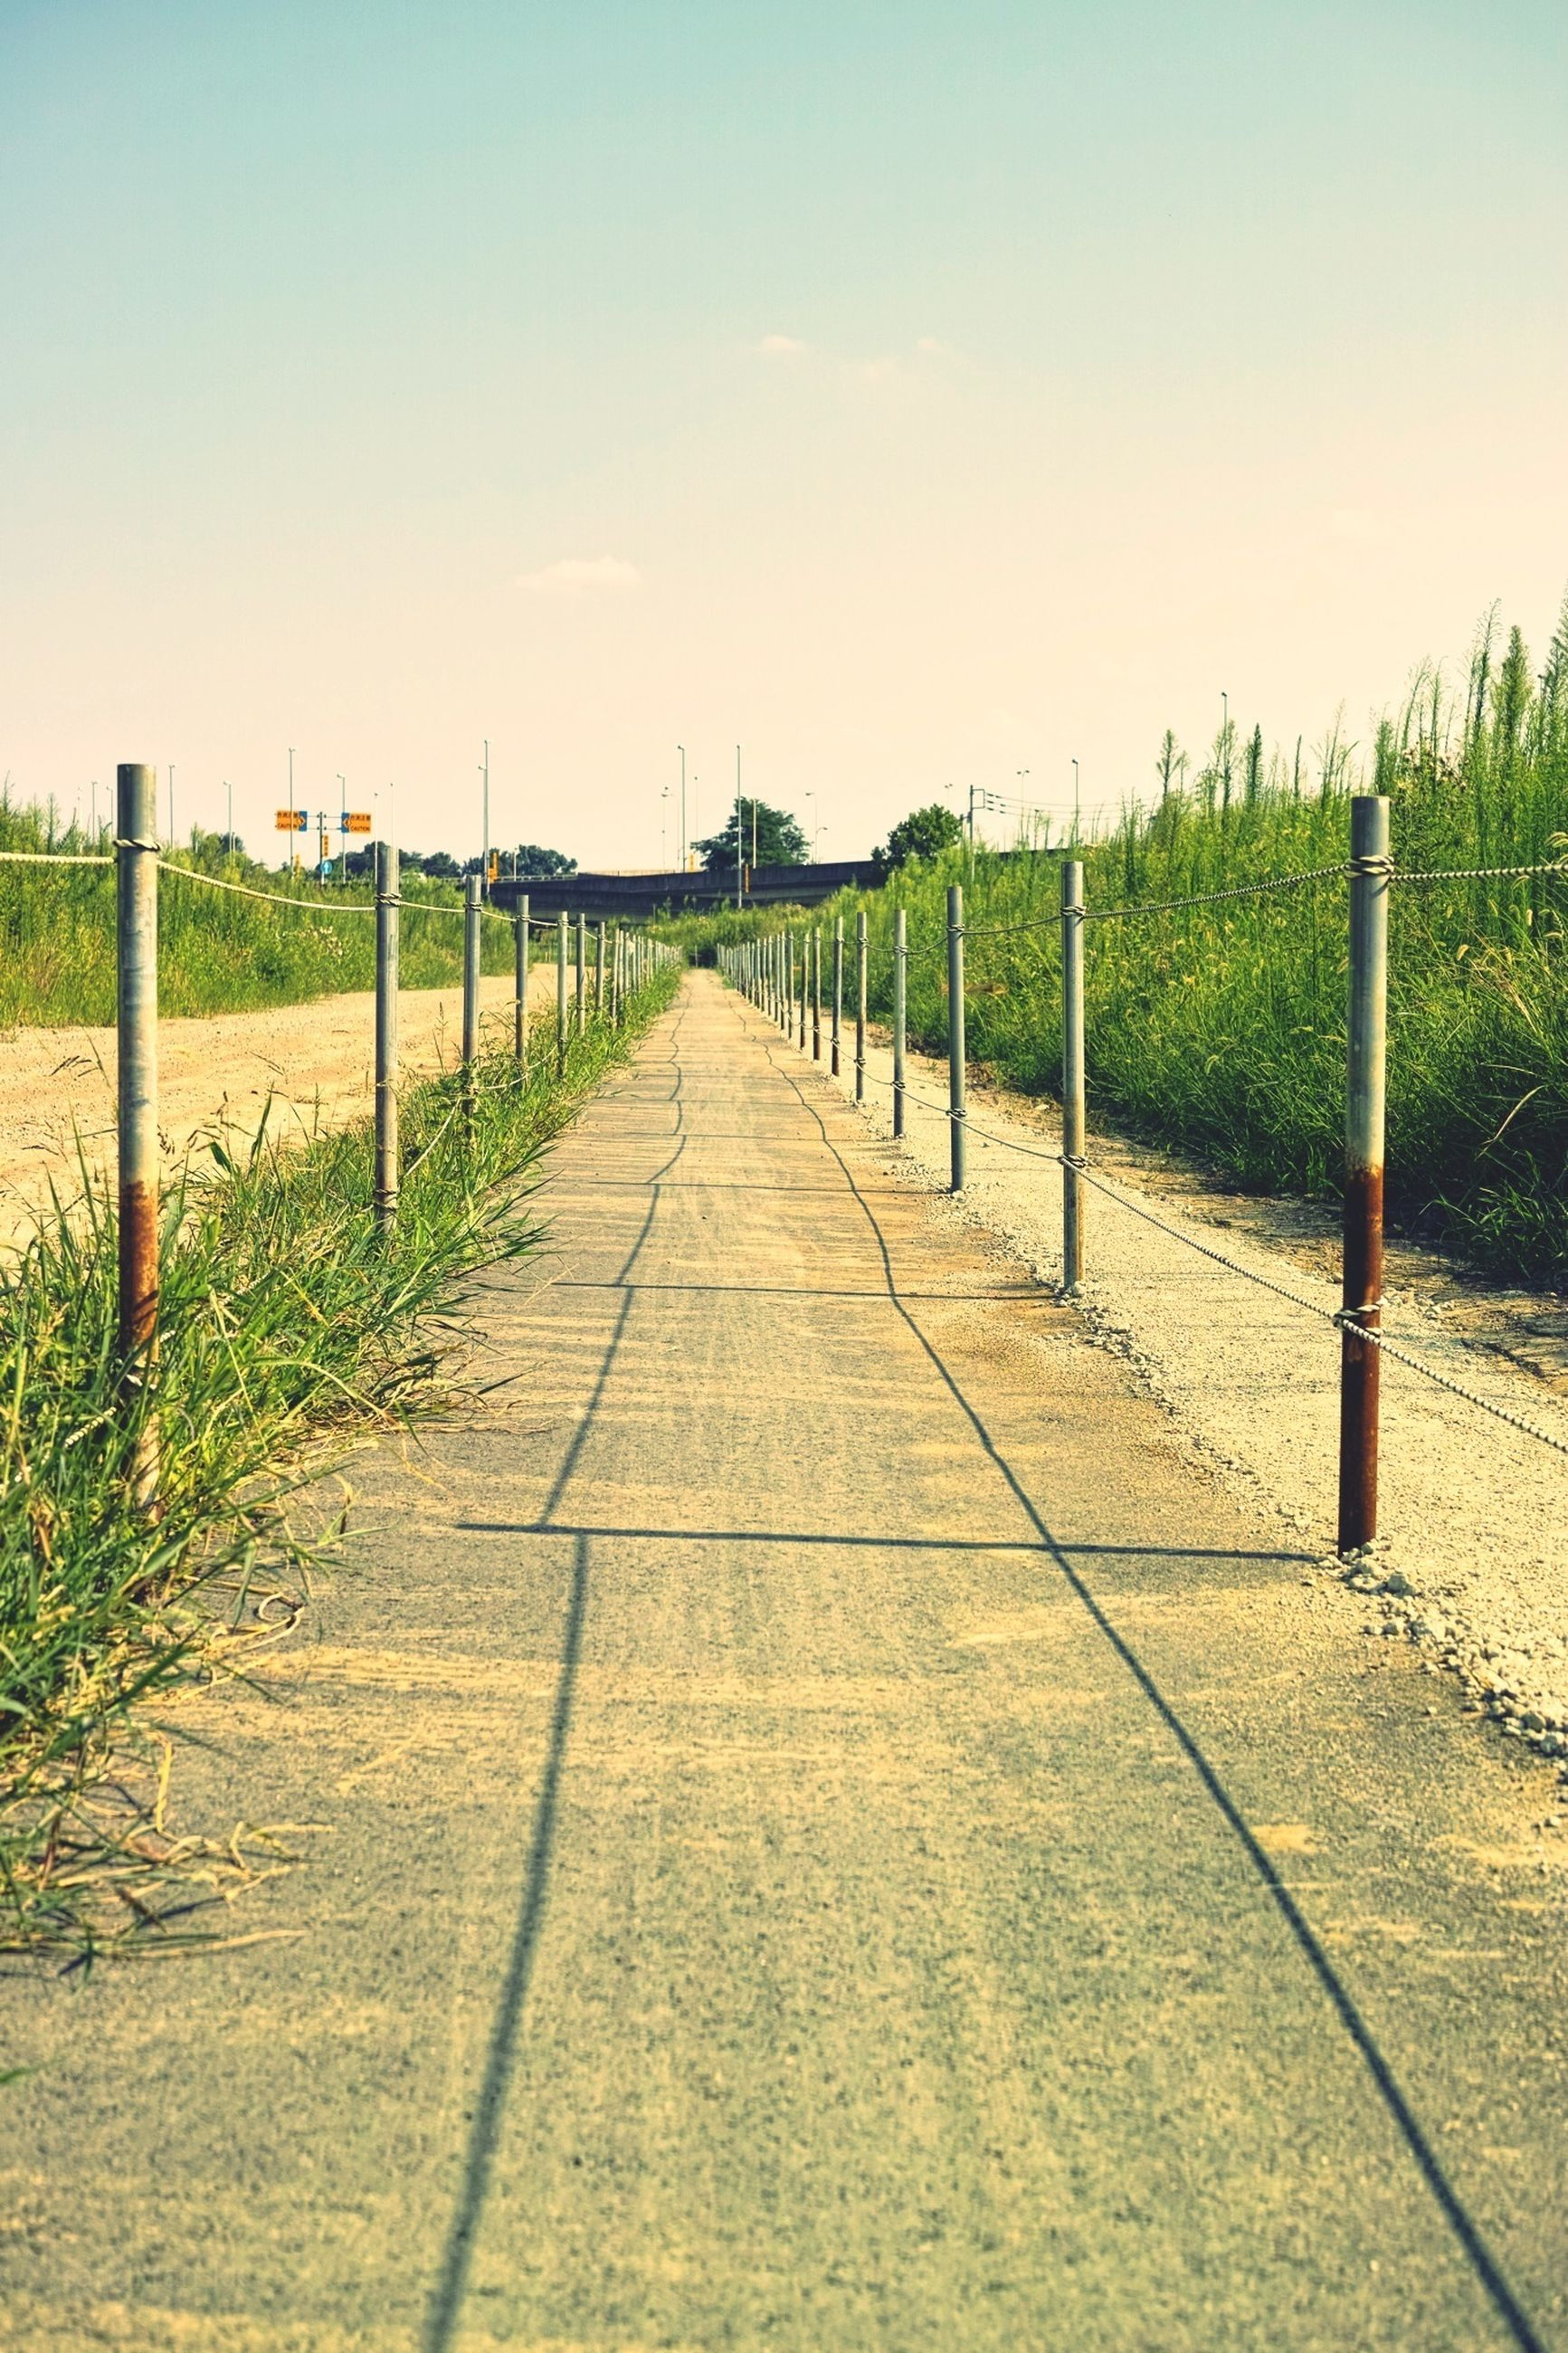 the way forward, diminishing perspective, vanishing point, tranquility, railing, tranquil scene, grass, sky, fence, clear sky, footpath, long, nature, walkway, pathway, empty, narrow, landscape, field, scenics